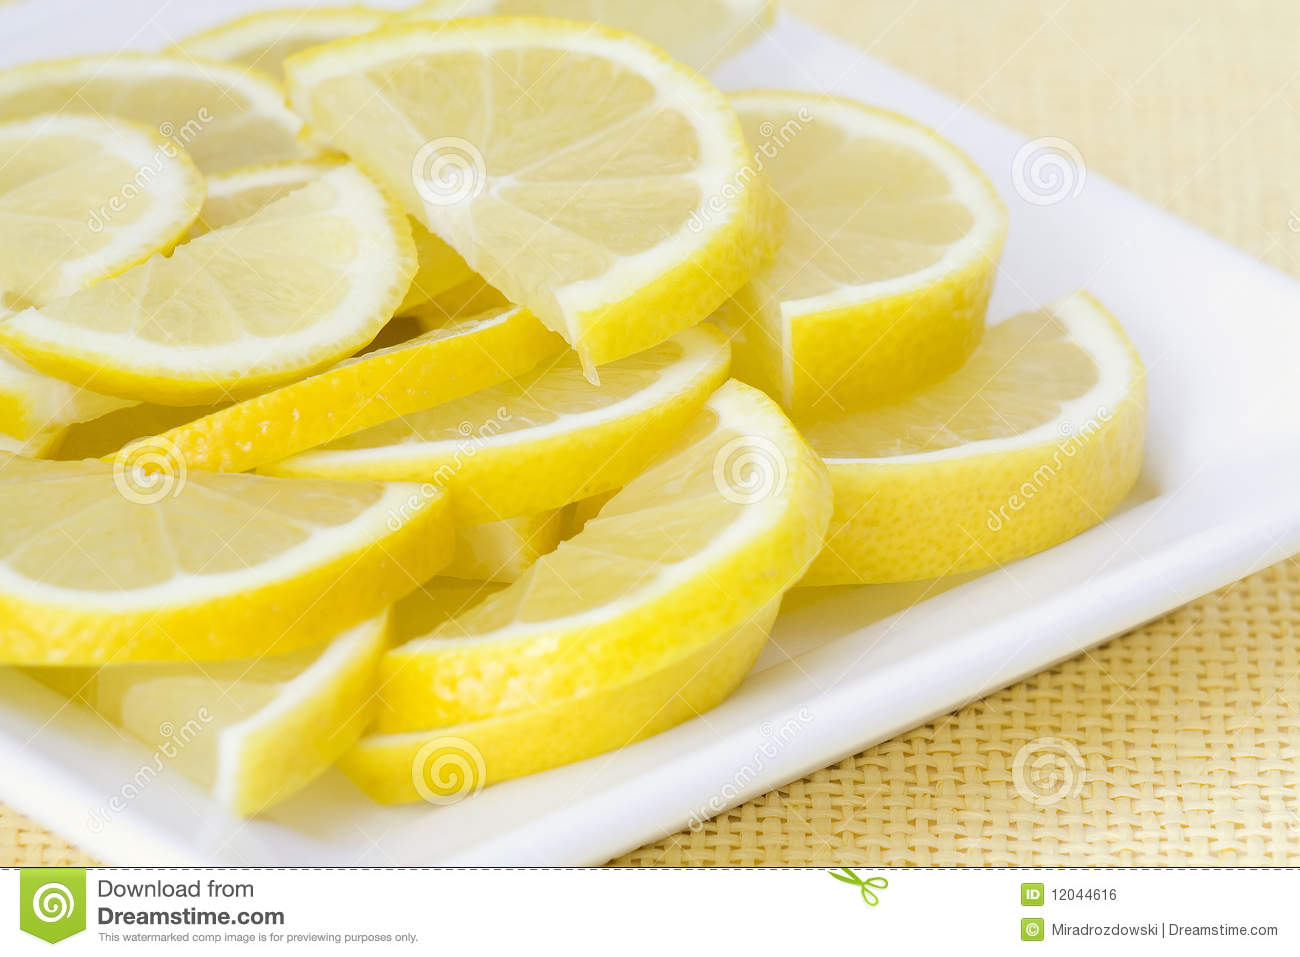 Lemon Slices Royalty Free Stock Image - Image: 12044616